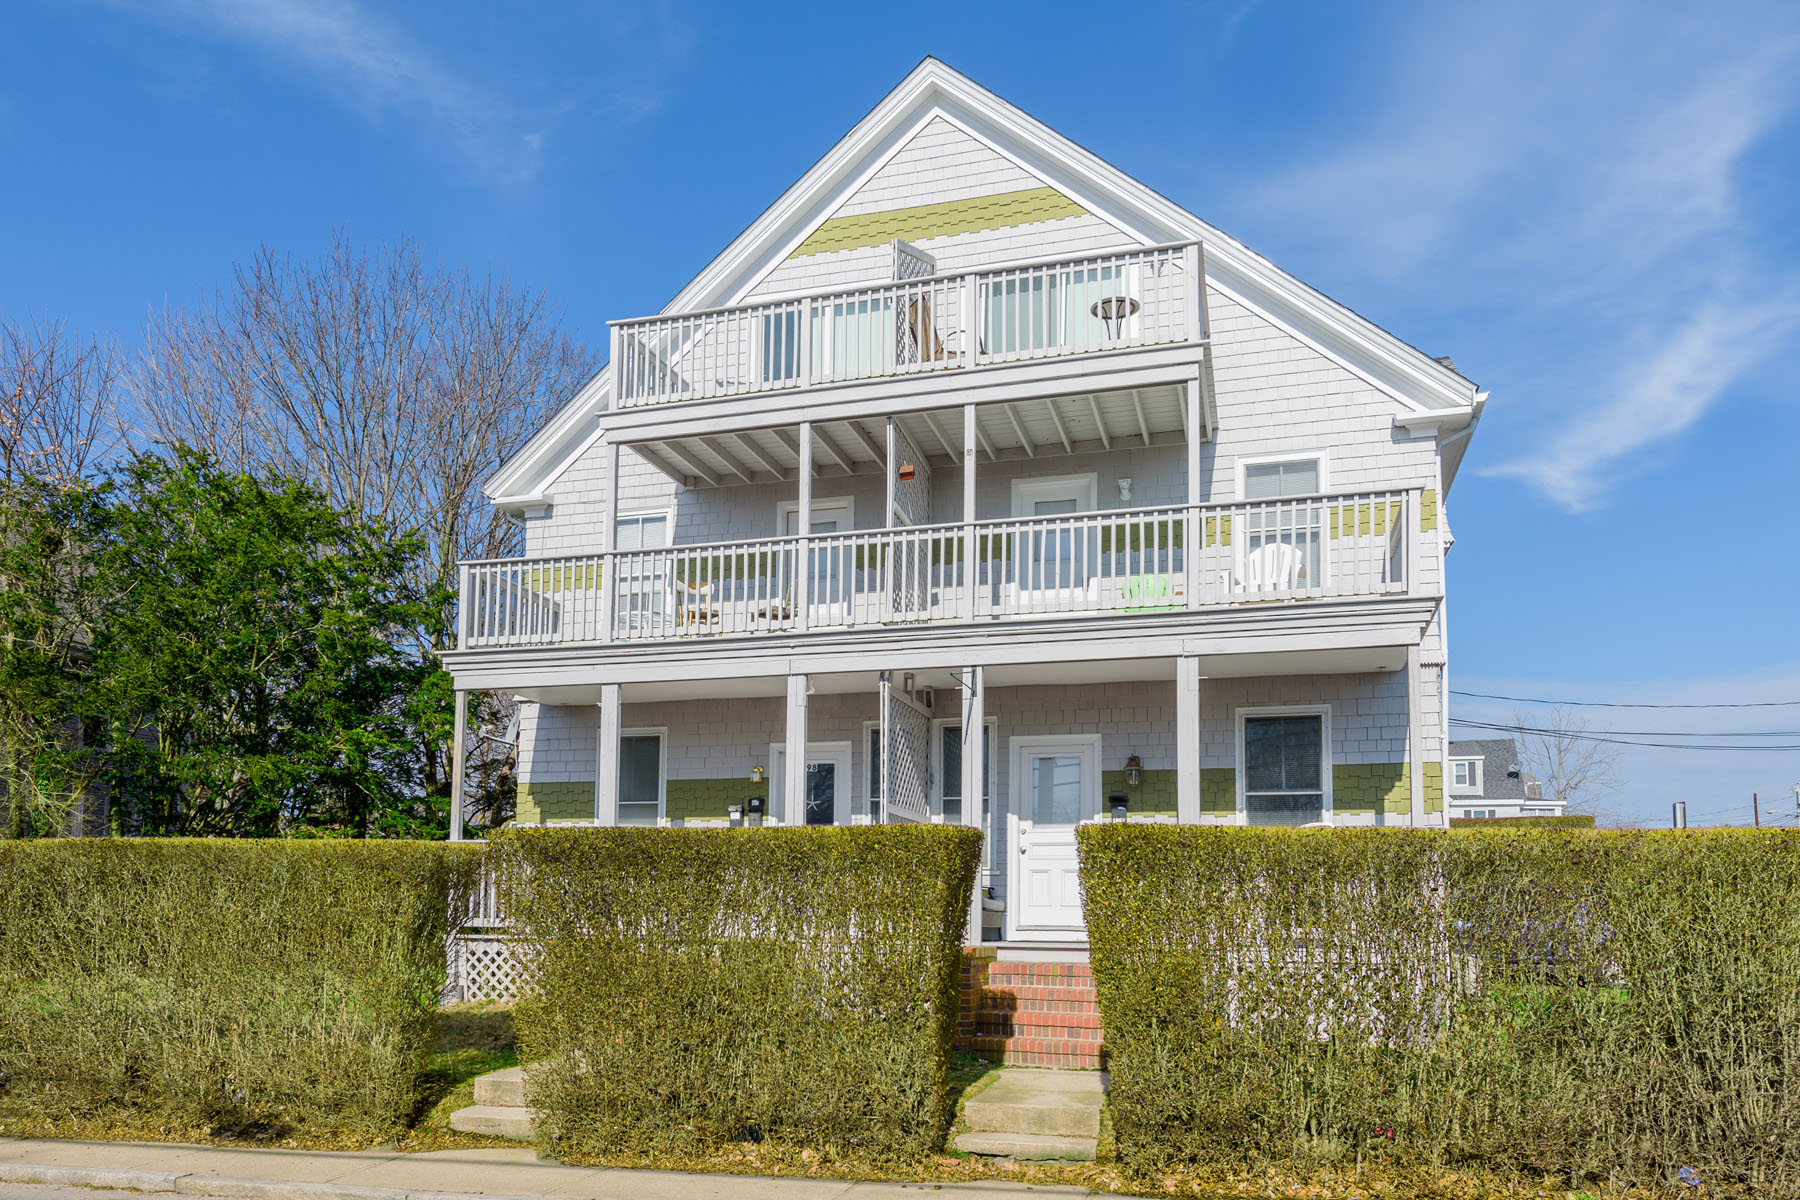 Condominium for Sale at 100 Bliss Rd, #3, Newport, RI 100 Bliss Rd 3 Newport, Rhode Island, 02840 United States